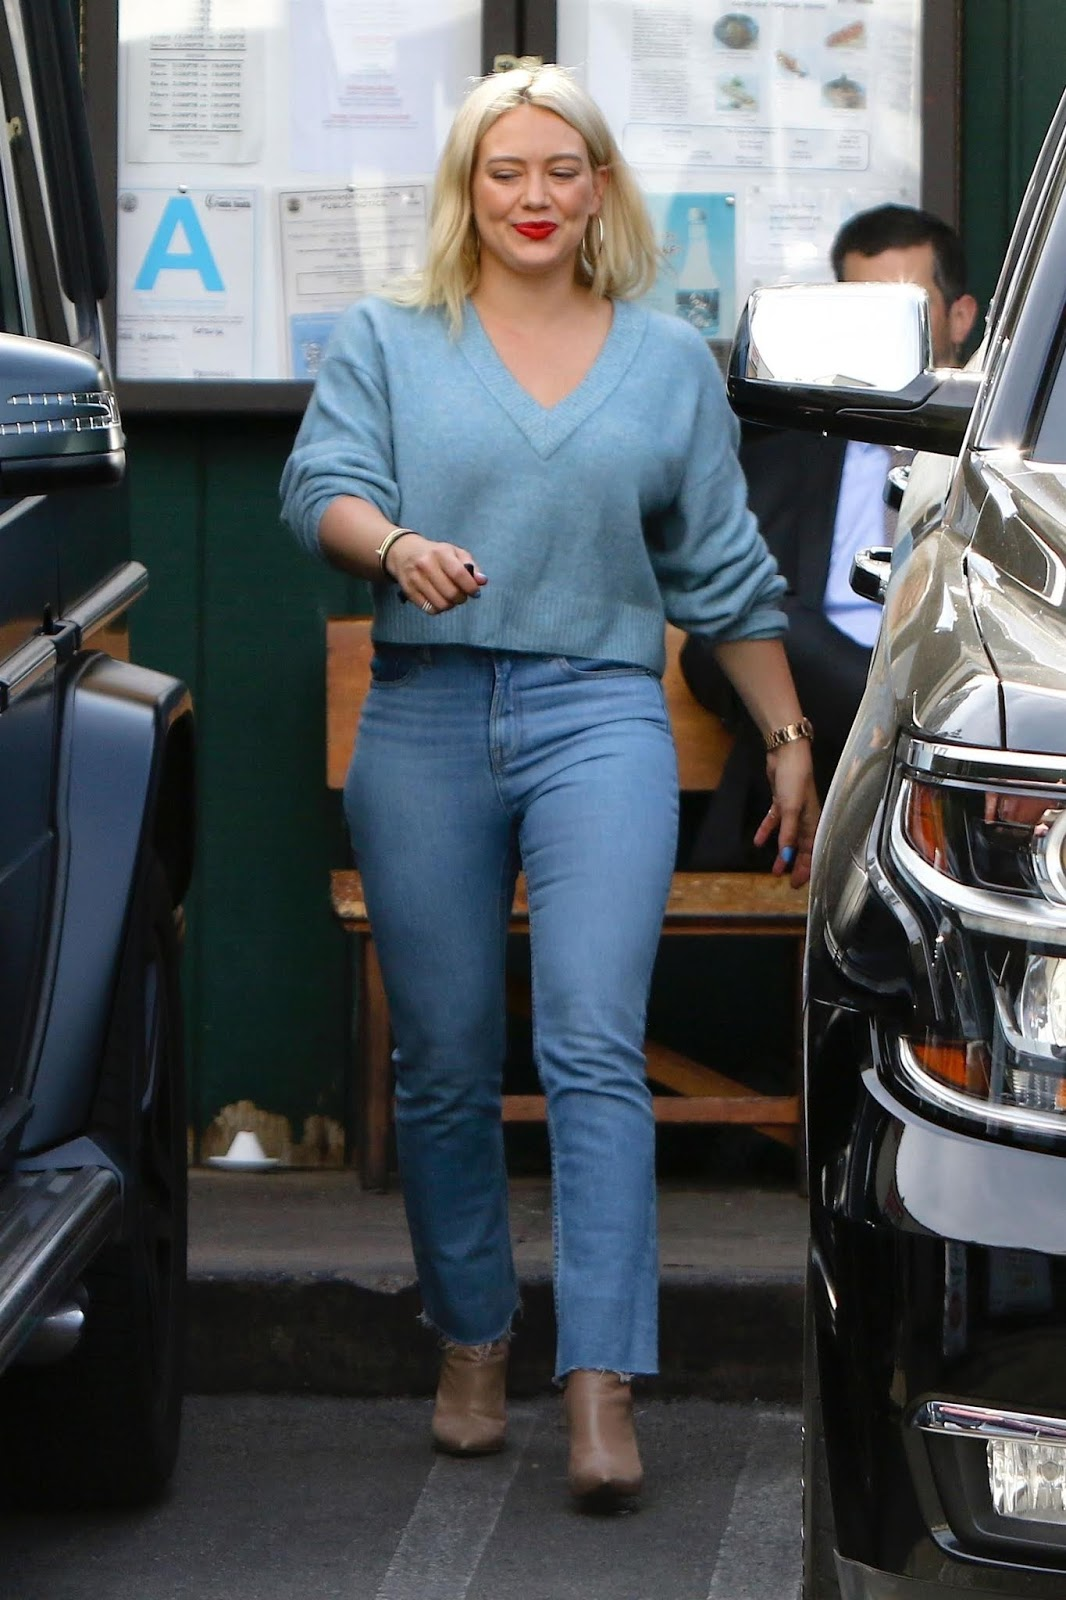 Hilary Duff meets up with some friends for lunch in Studio City - 01/28/2019